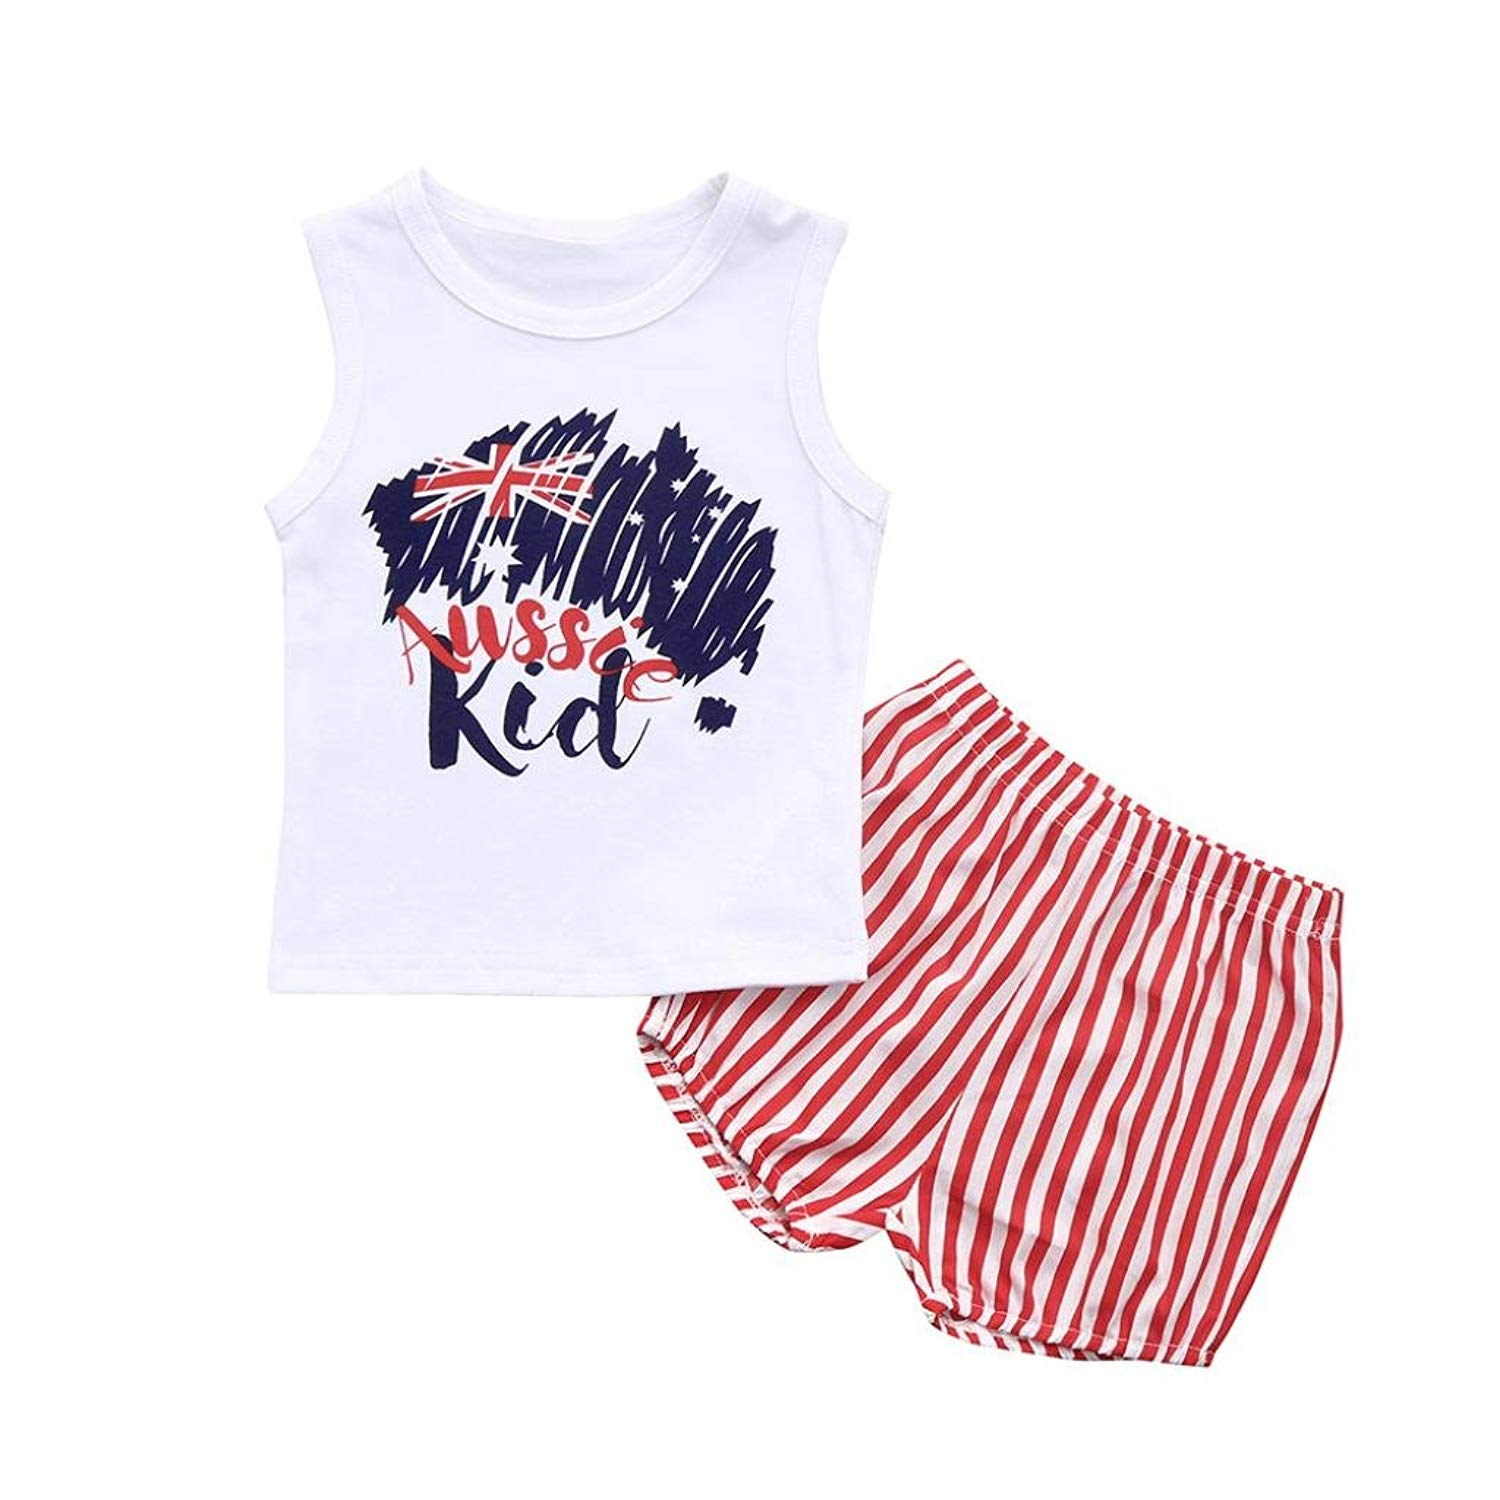 bfa49e15b Get Quotations · Aniywn Summer Infant Baby Girls Boys Letter Striped Star Tops  Vest+Shorts Cool Fashion Outfits